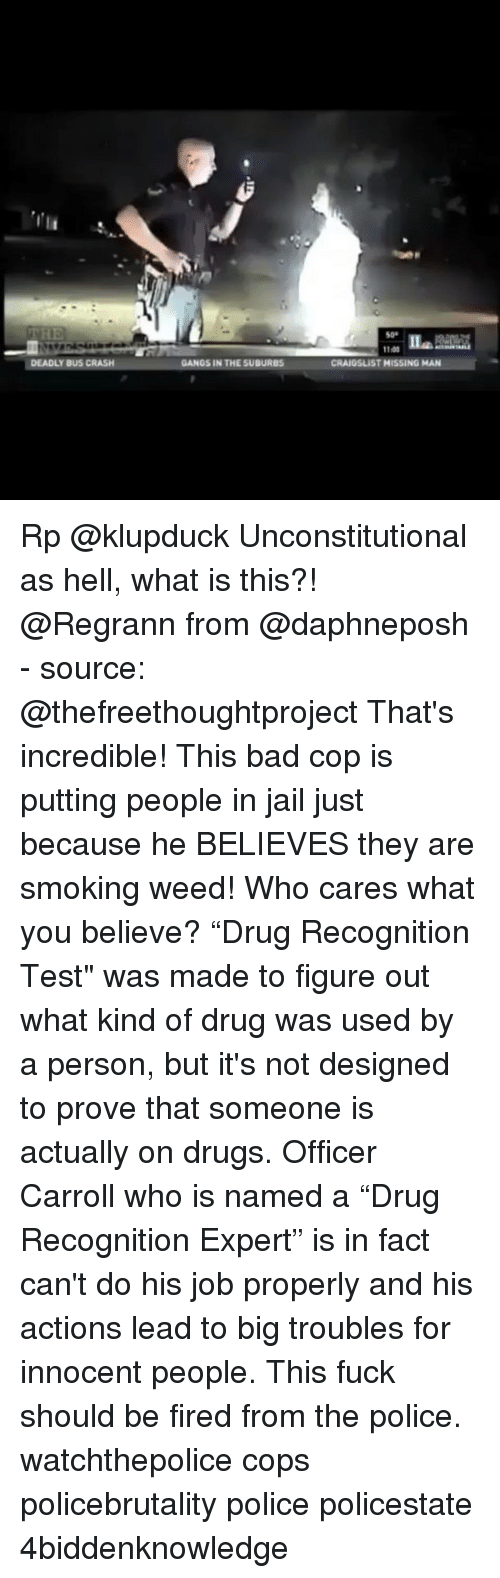 """Bad, Drugs, and Jail: 500  DEADLY BUS CRASH  GANGS IN THE SUBURBS Rp @klupduck Unconstitutional as hell, what is this?! @Regrann from @daphneposh - source: @thefreethoughtproject That's incredible! This bad cop is putting people in jail just because he BELIEVES they are smoking weed! Who cares what you believe? """"Drug Recognition Test"""" was made to figure out what kind of drug was used by a person, but it's not designed to prove that someone is actually on drugs. Officer Carroll who is named a """"Drug Recognition Expert"""" is in fact can't do his job properly and his actions lead to big troubles for innocent people. This fuck should be fired from the police. watchthepolice cops policebrutality police policestate 4biddenknowledge"""